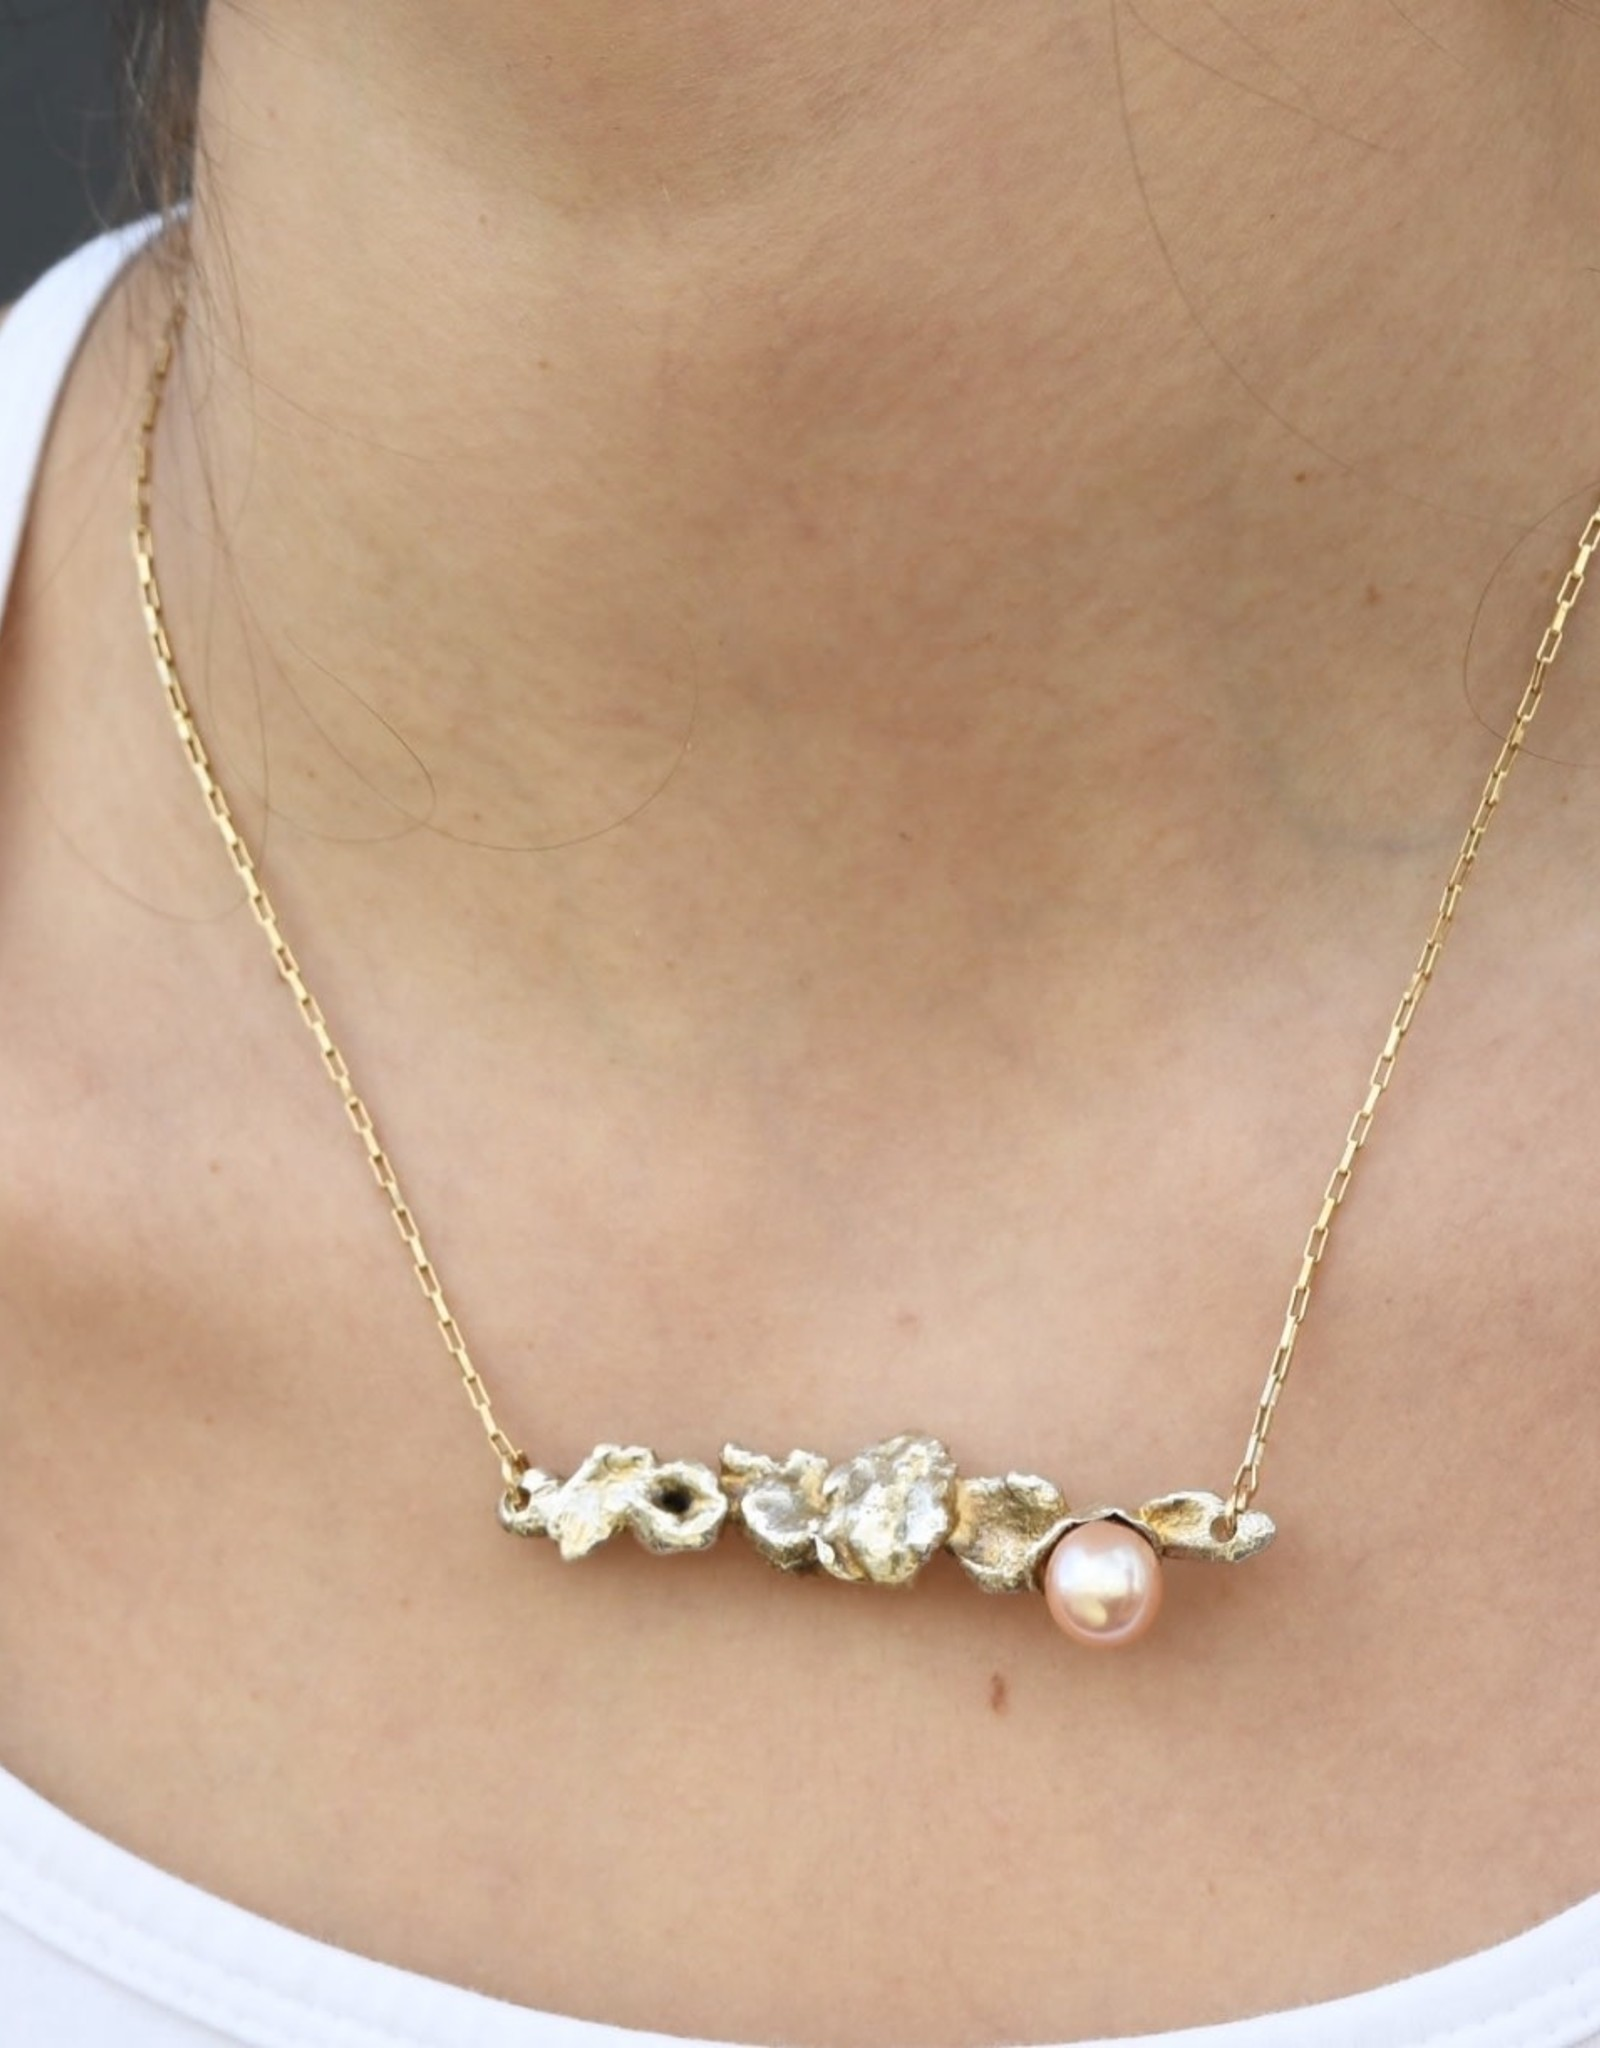 Becca Paisley Stabach BP Freshwater Pearl, Sterling S, Gold Fill chain